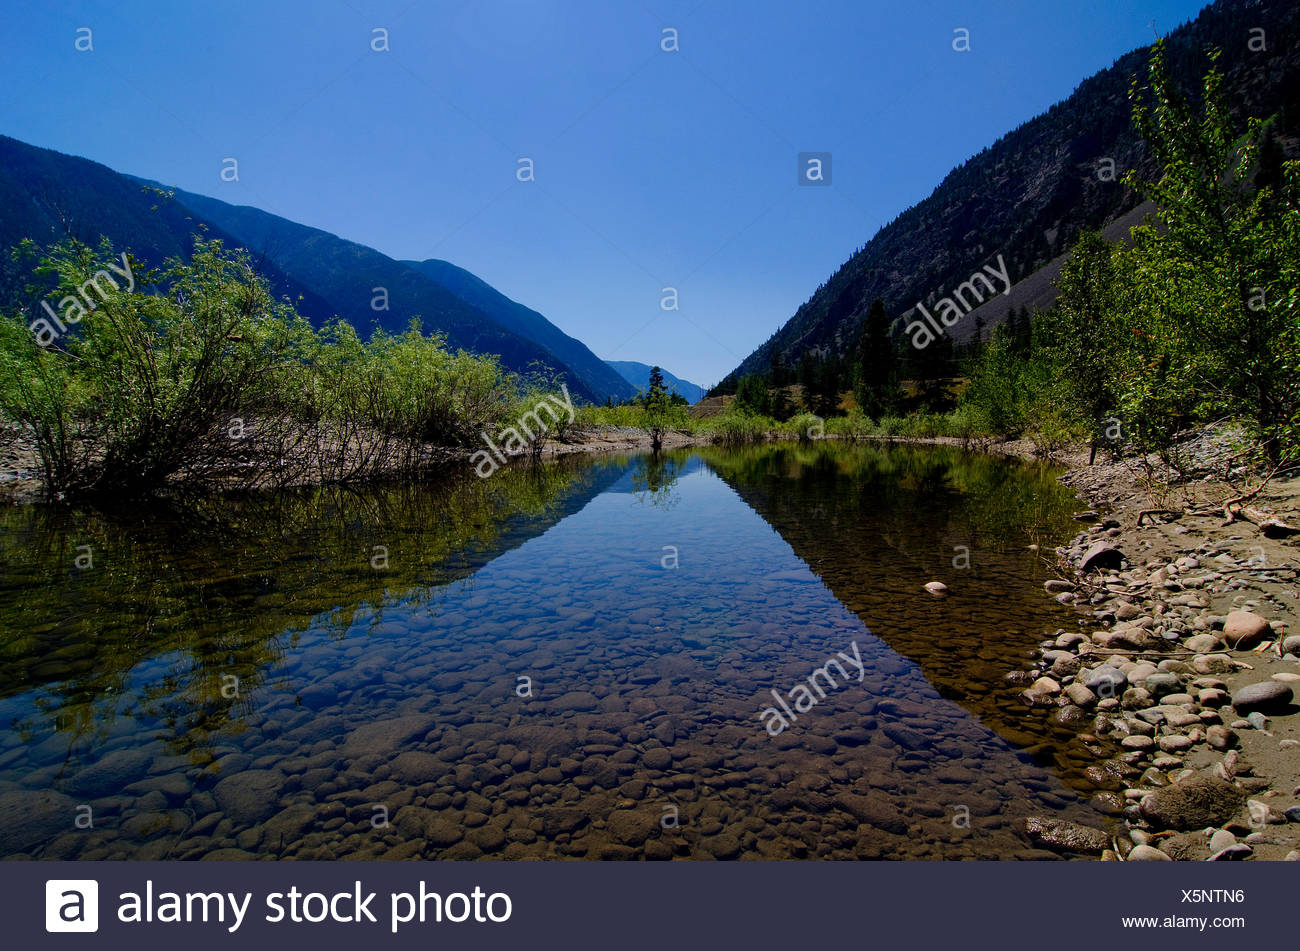 The shapes and curves of the rugged terrain along the Similkameen River, near Keremeos, in the Simikameen region of British - Stock Image